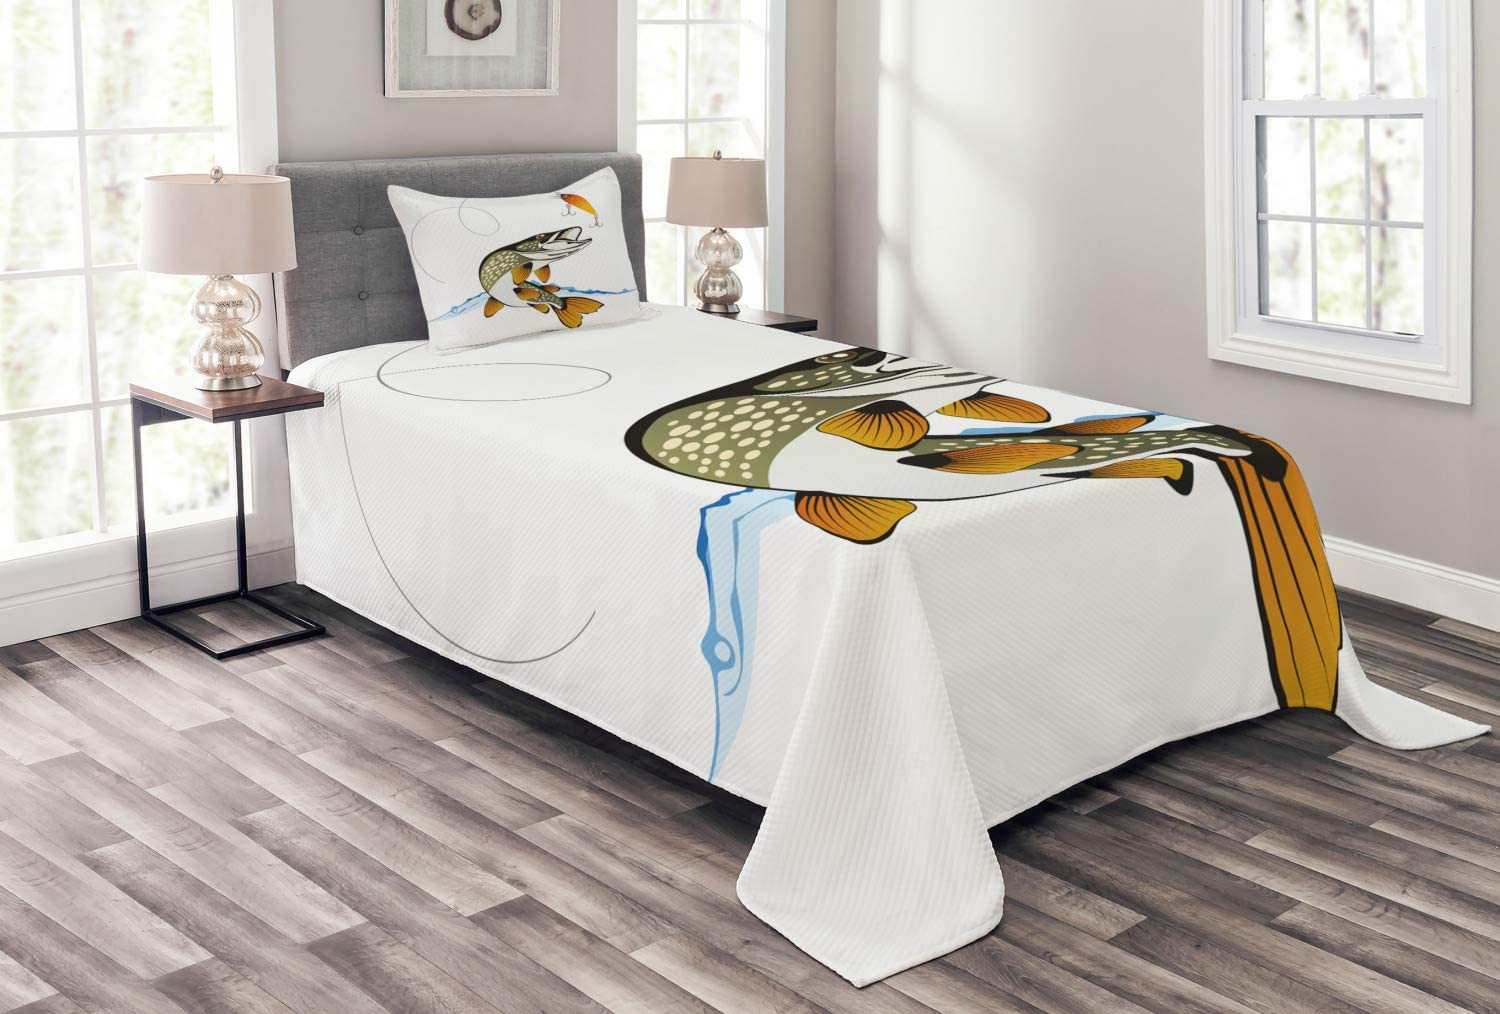 Lunarable Fishing Bedspread, Pike Out of Water Splash to Catch The Trap Lure Tackling Marine Life Illustration, Decorative Quilted 2 Piece Coverlet Set with Pillow Sham, Twin Size, Pale Orange